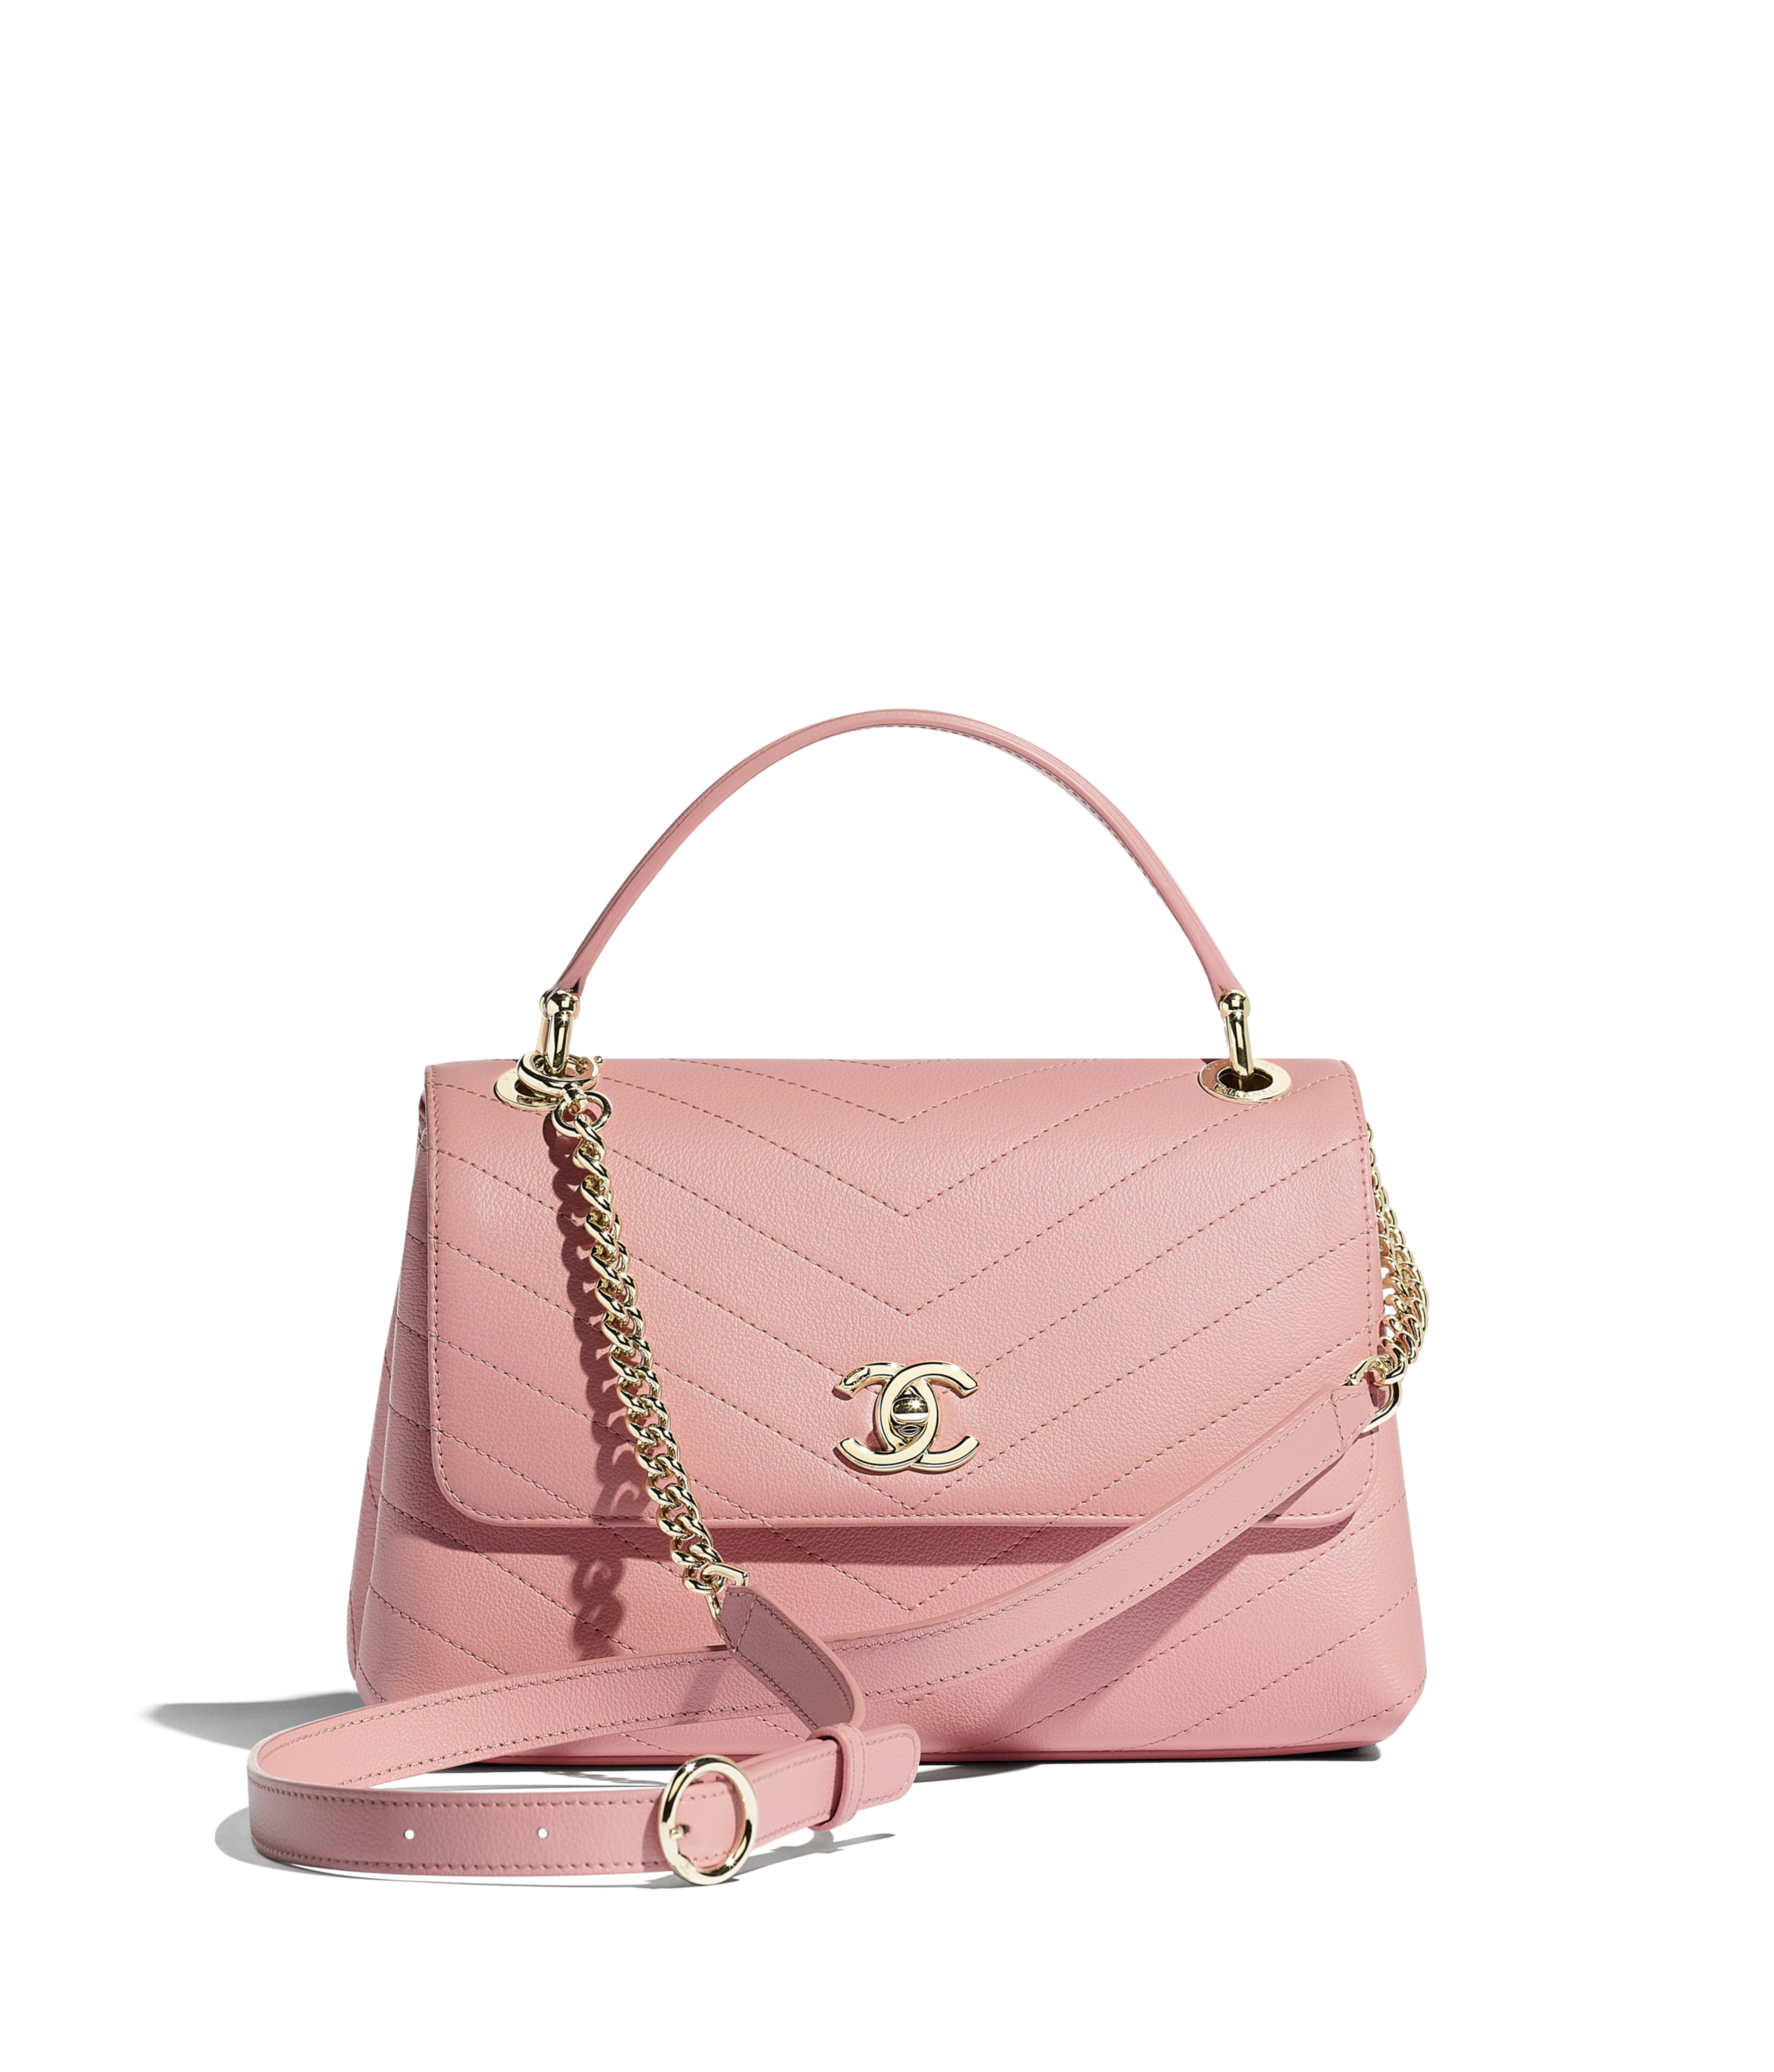 39286eeace0fcc Small Flap Bag with Top Handle Grained Calfskin & Gold-Tone Metal, Pink  Ref. A57147Y83381N0897